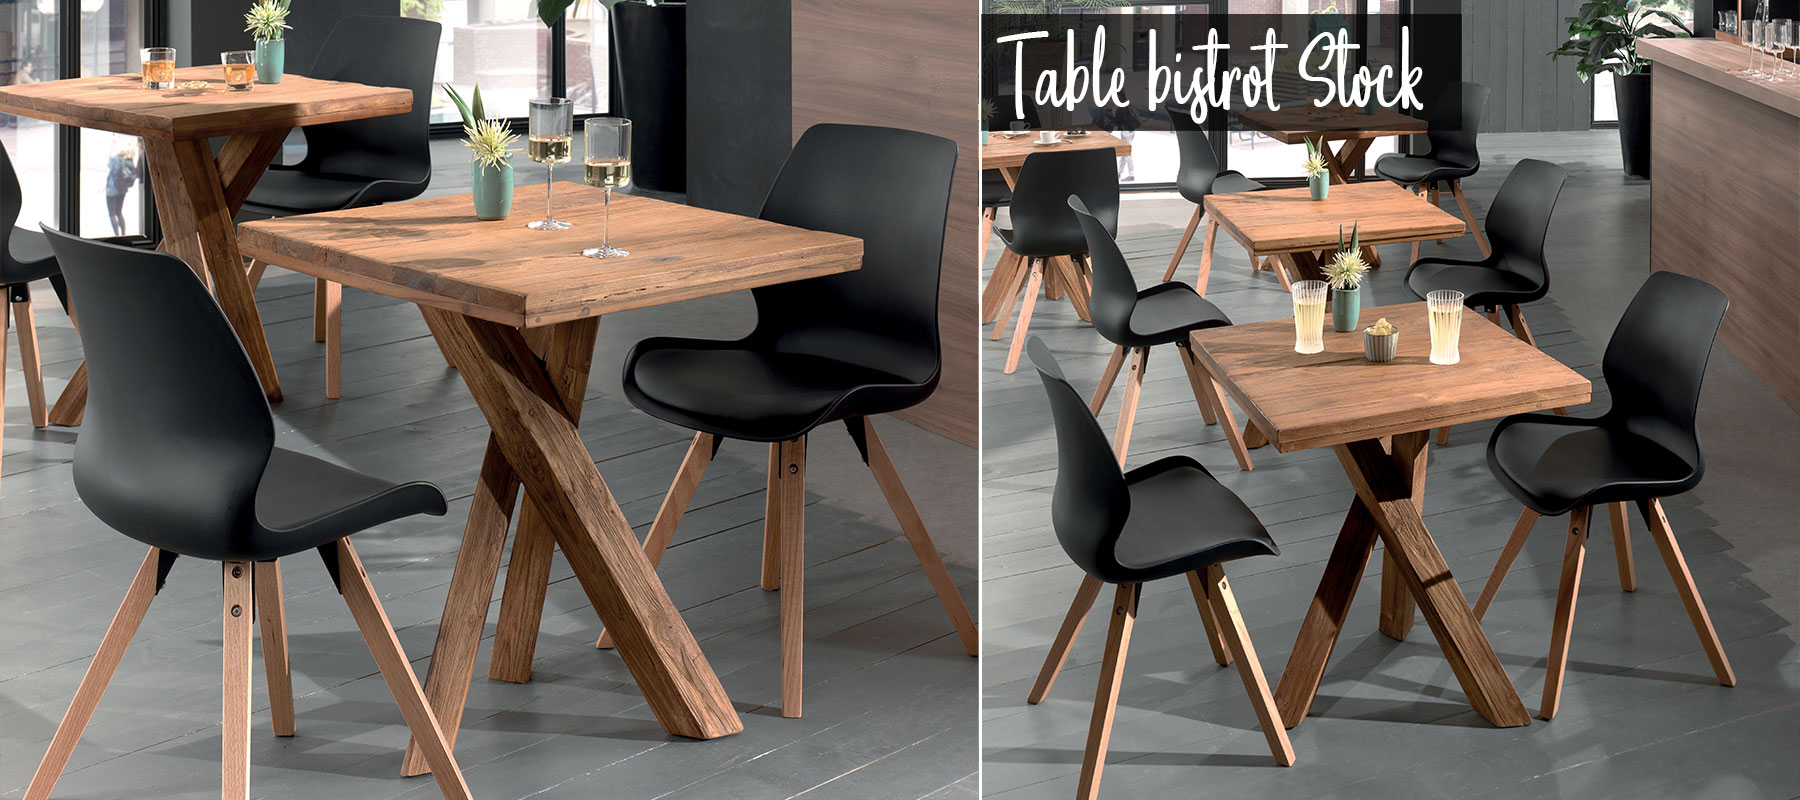 Tables bistrot STOCK